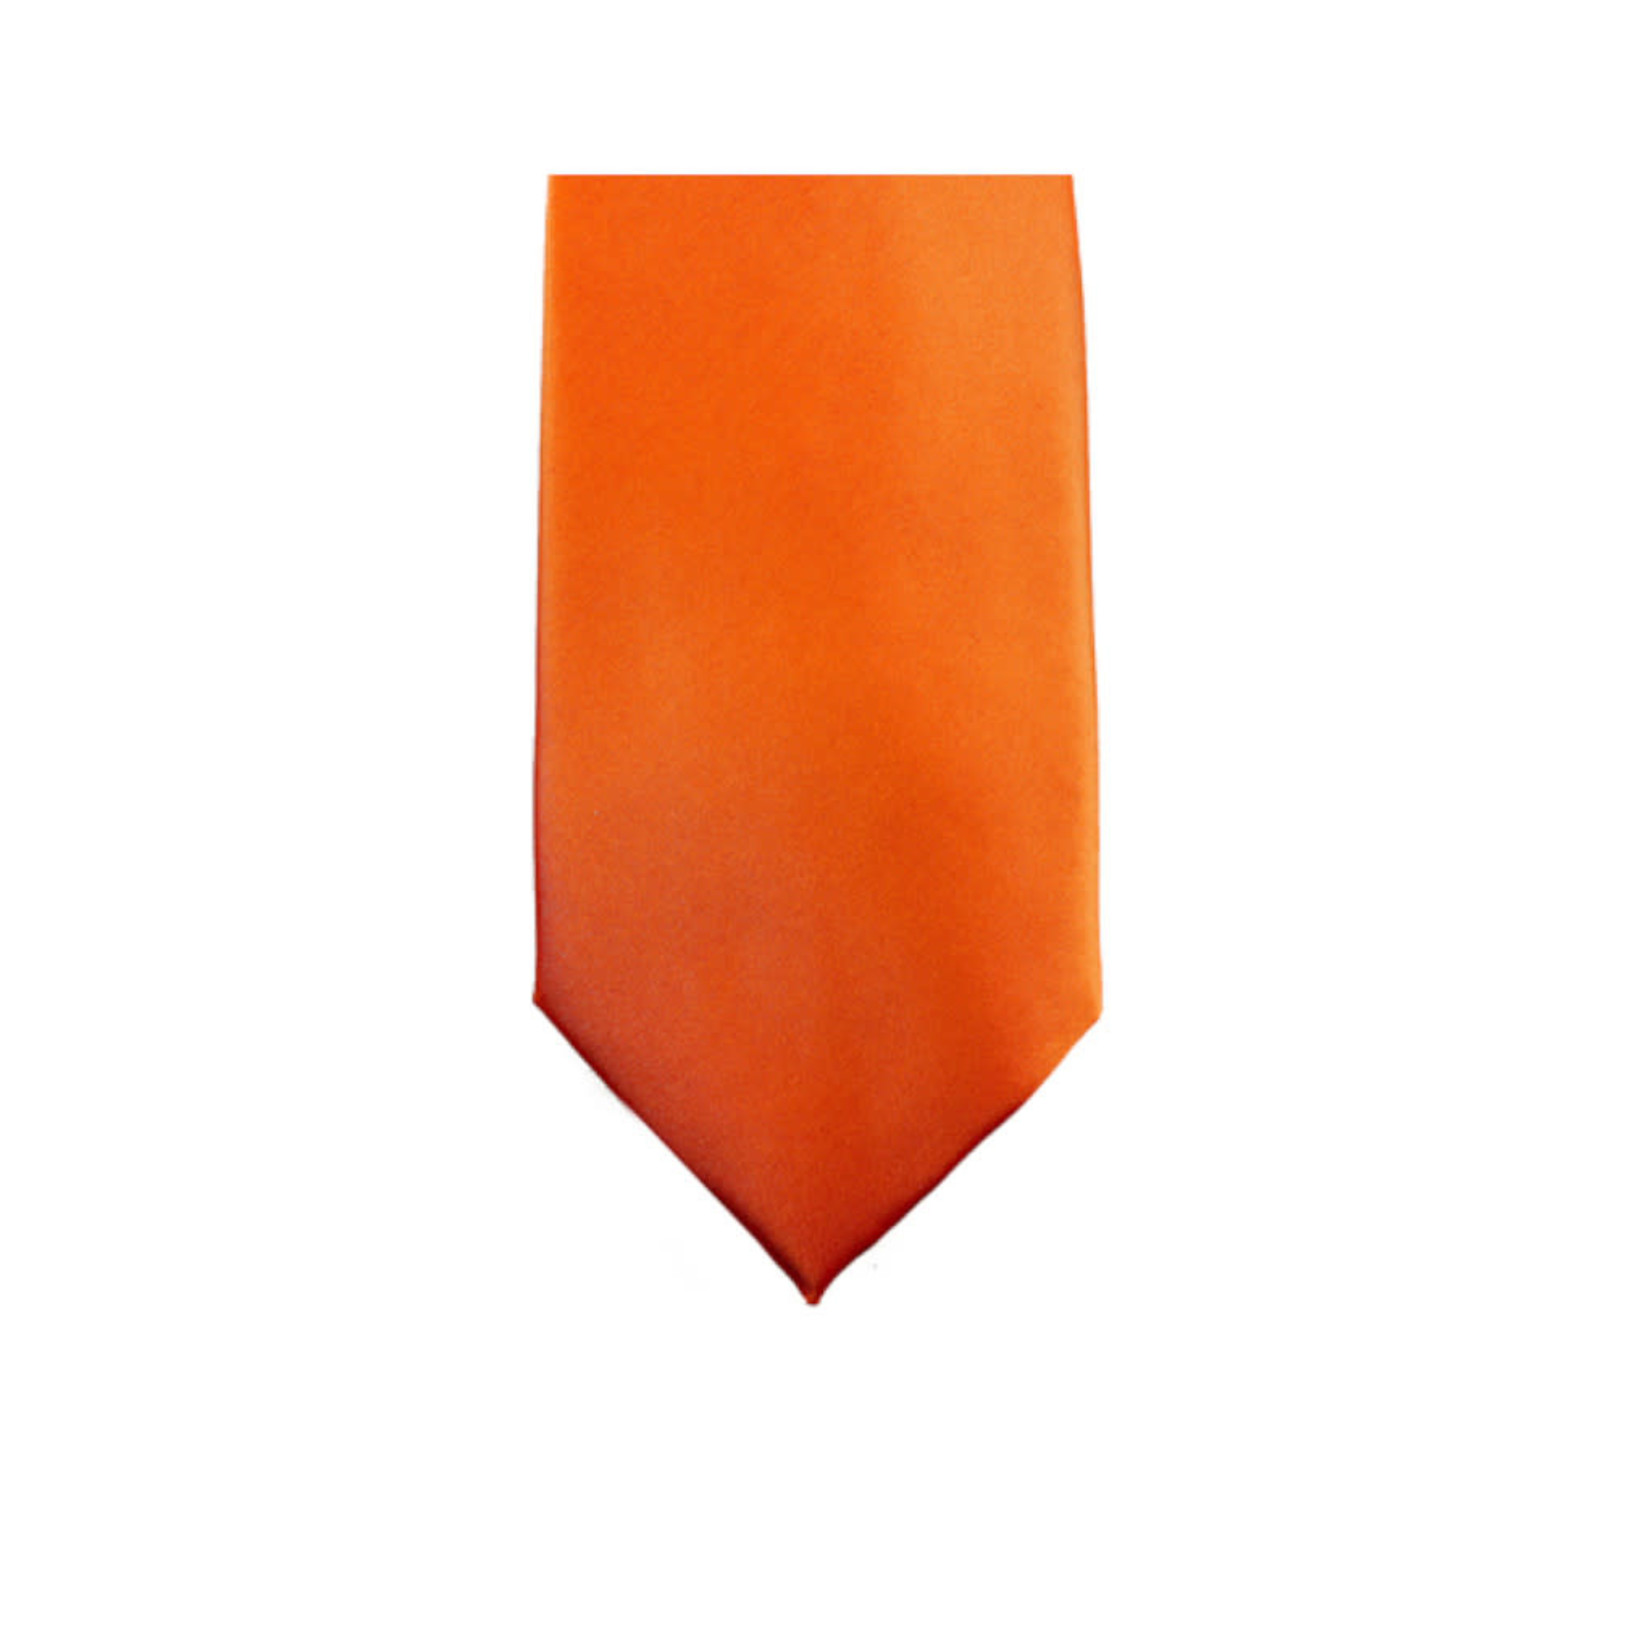 Knotz M100-10 Solid Orange Tie